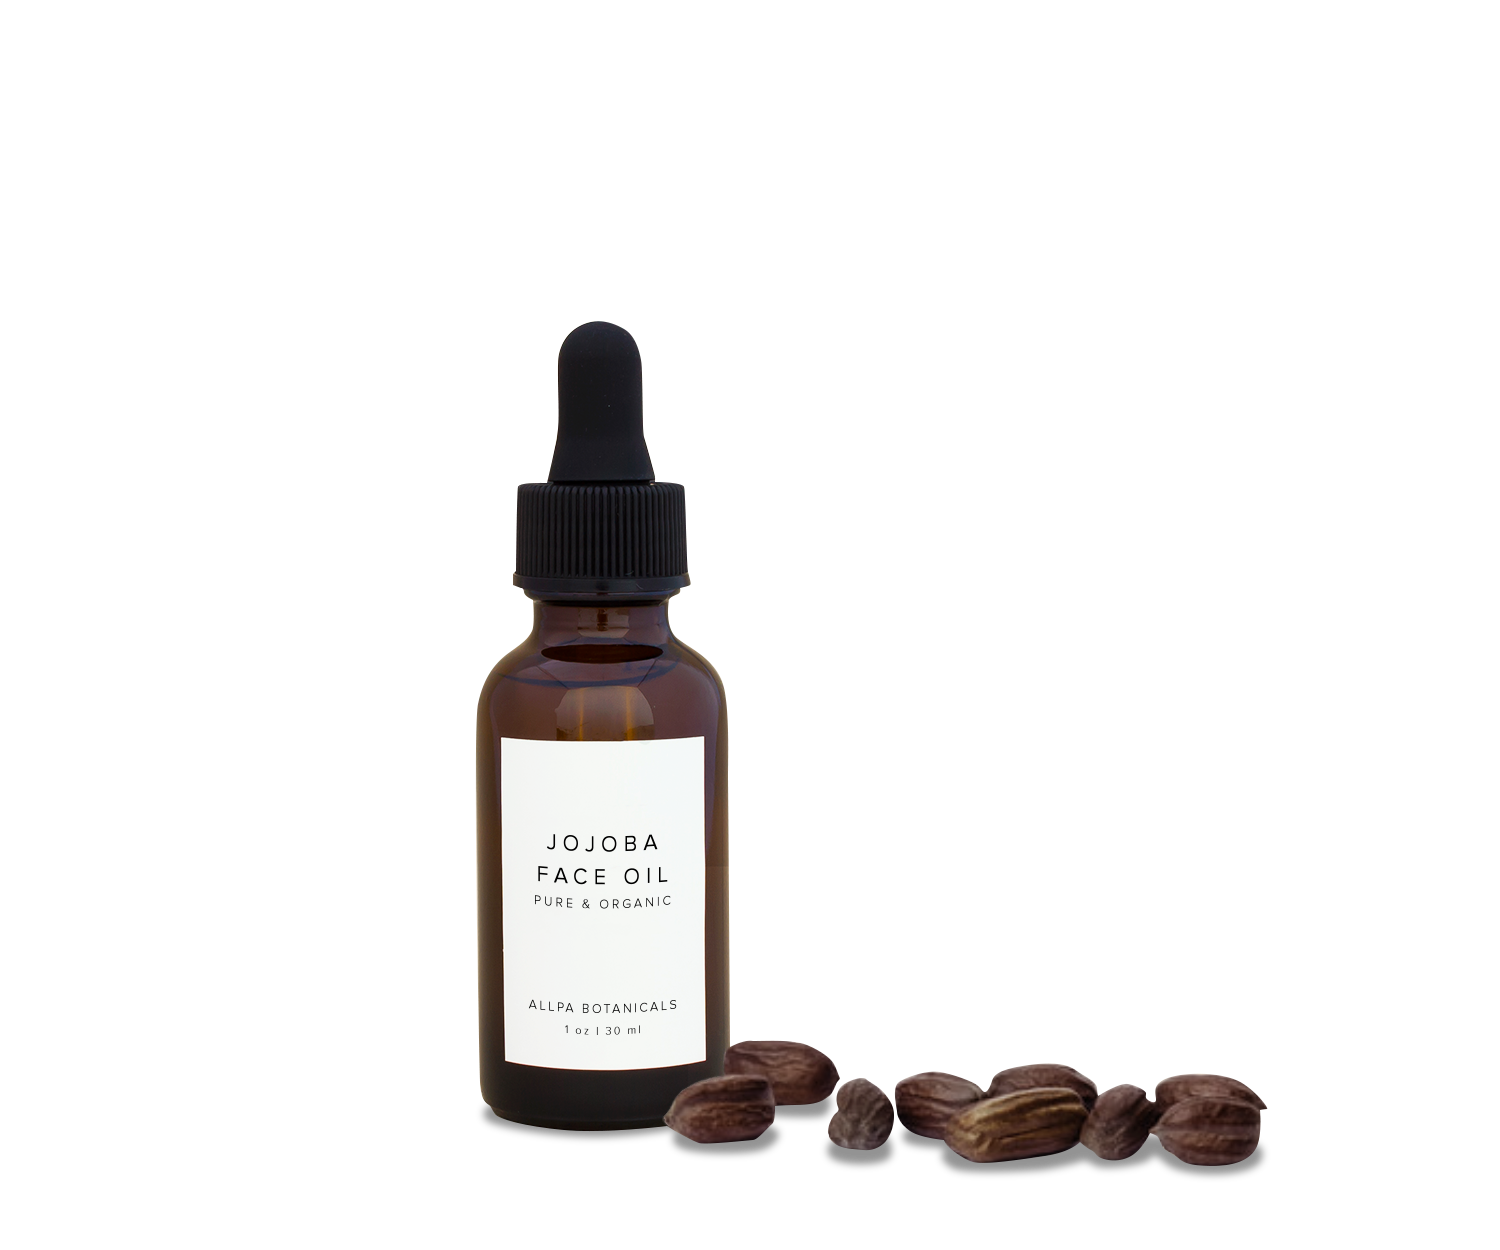 Jojoba Face Oil